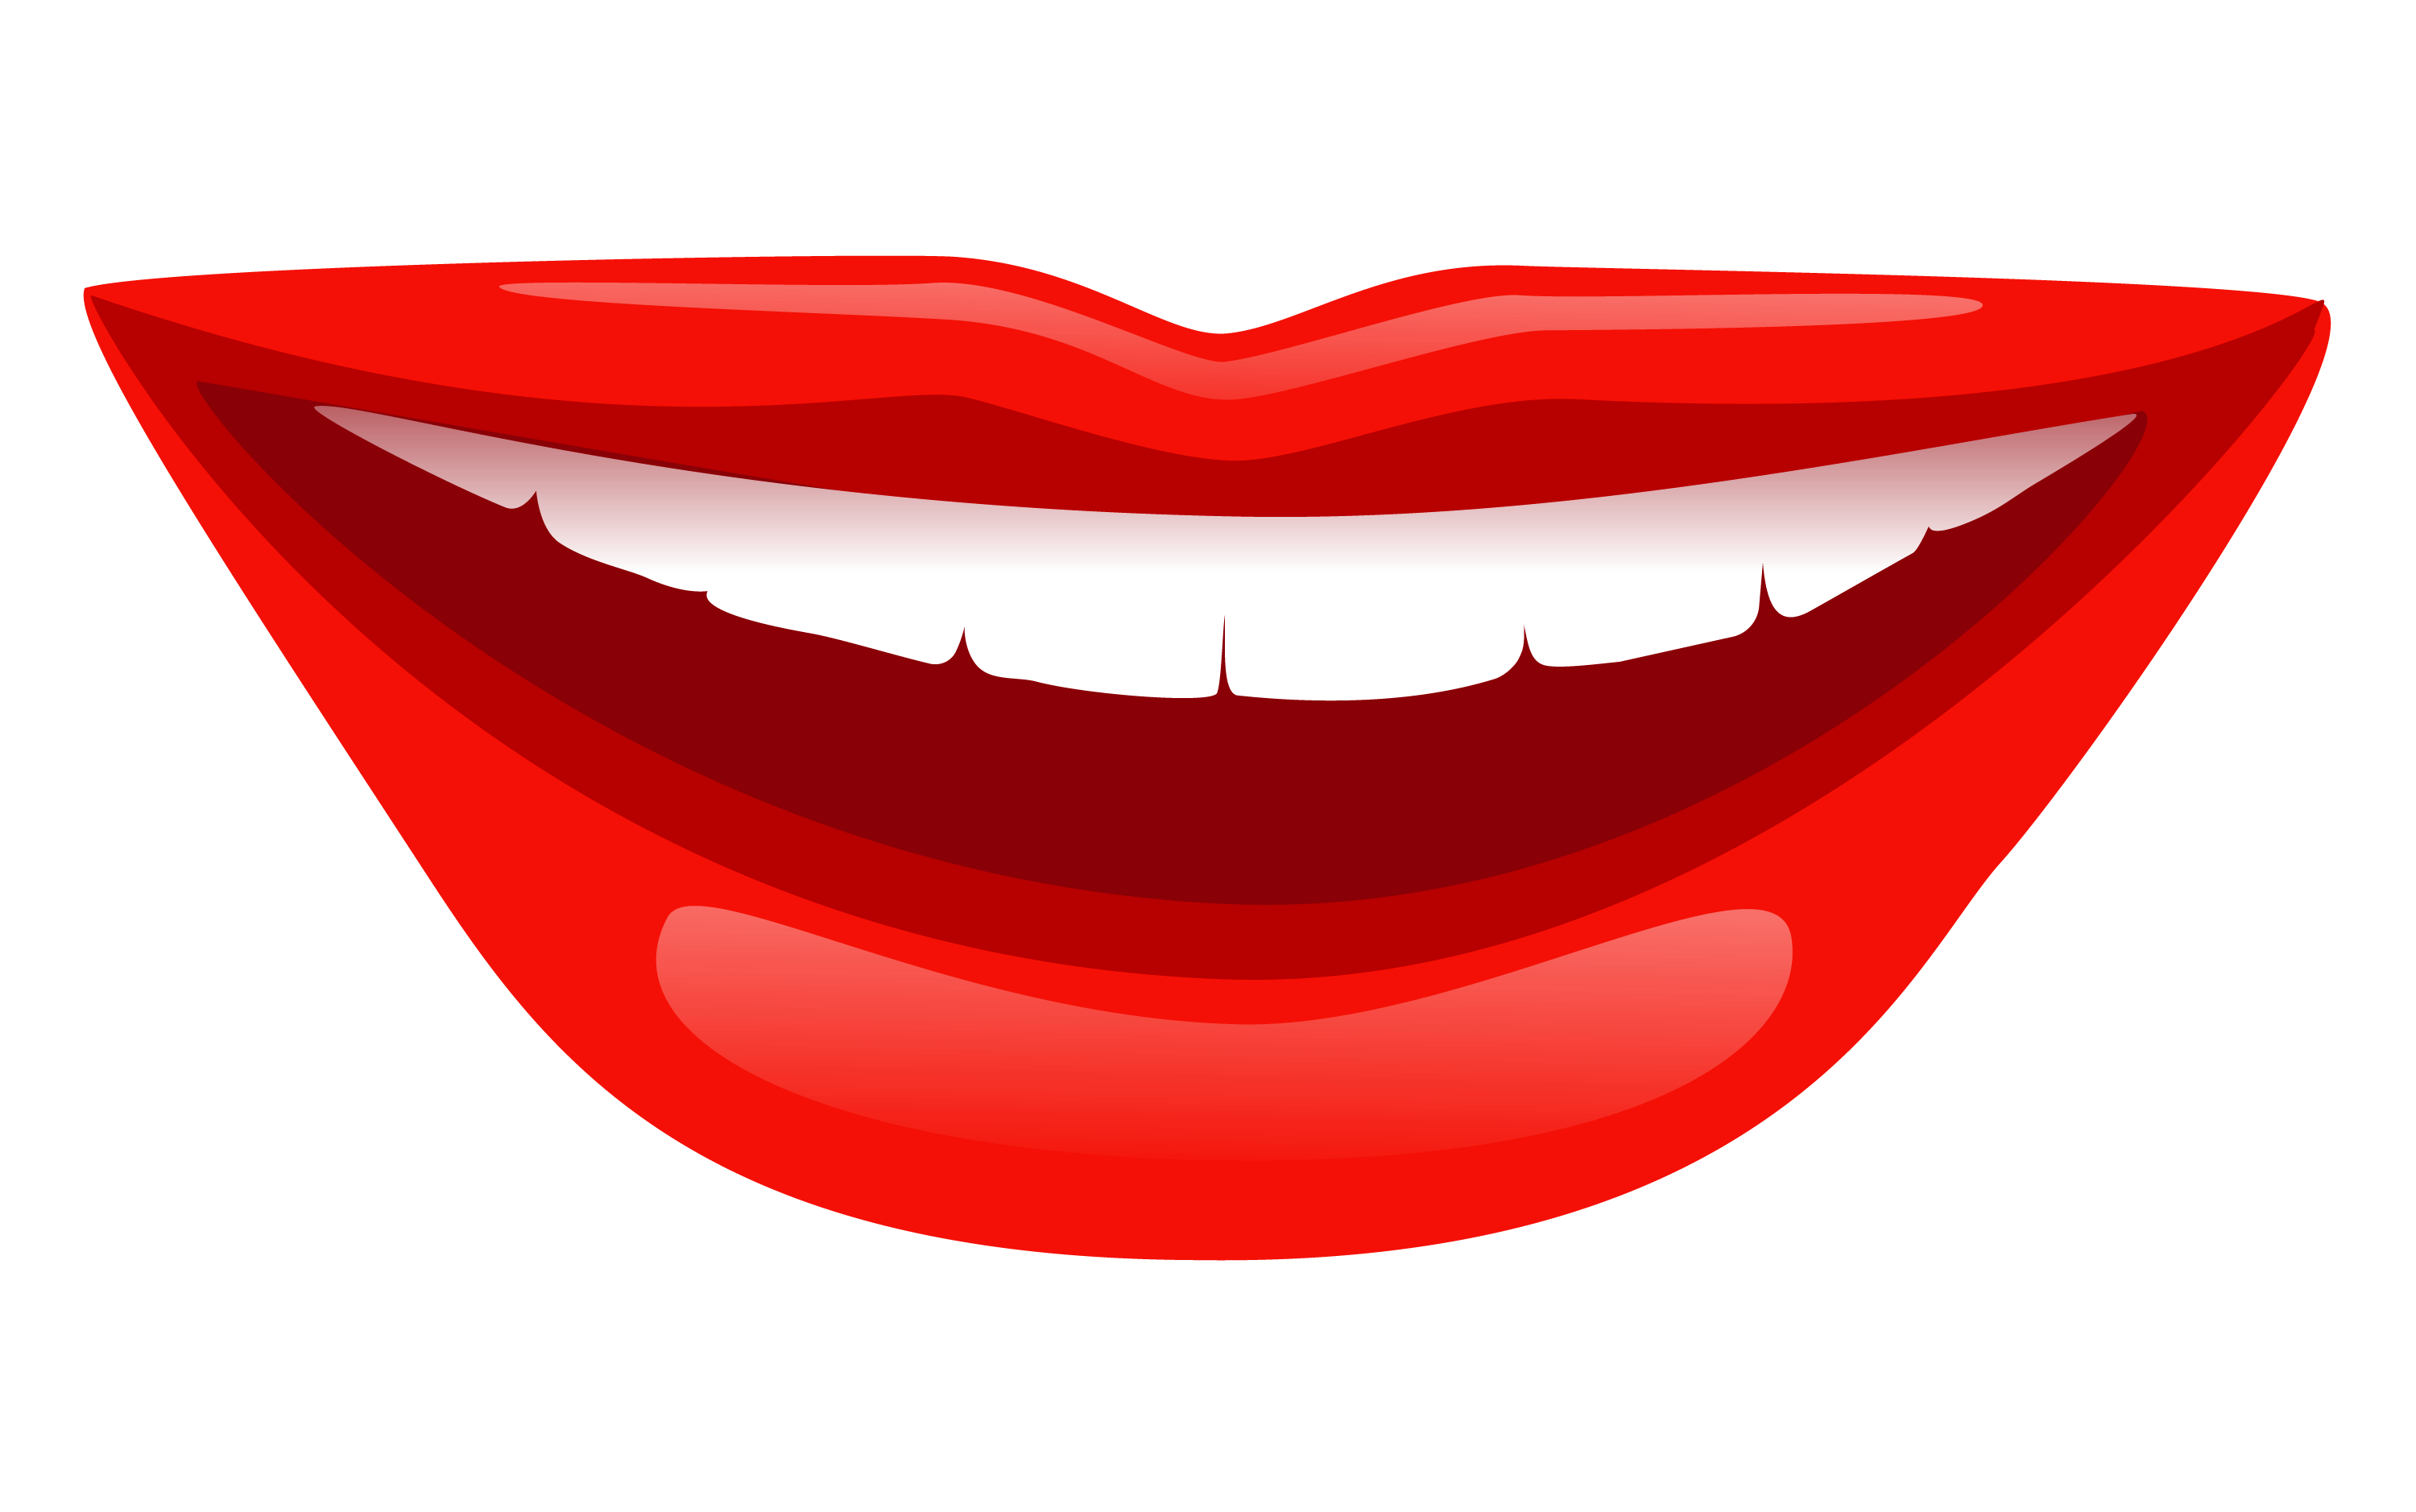 Lipstick clipart animated. Cartoon png images pngpix